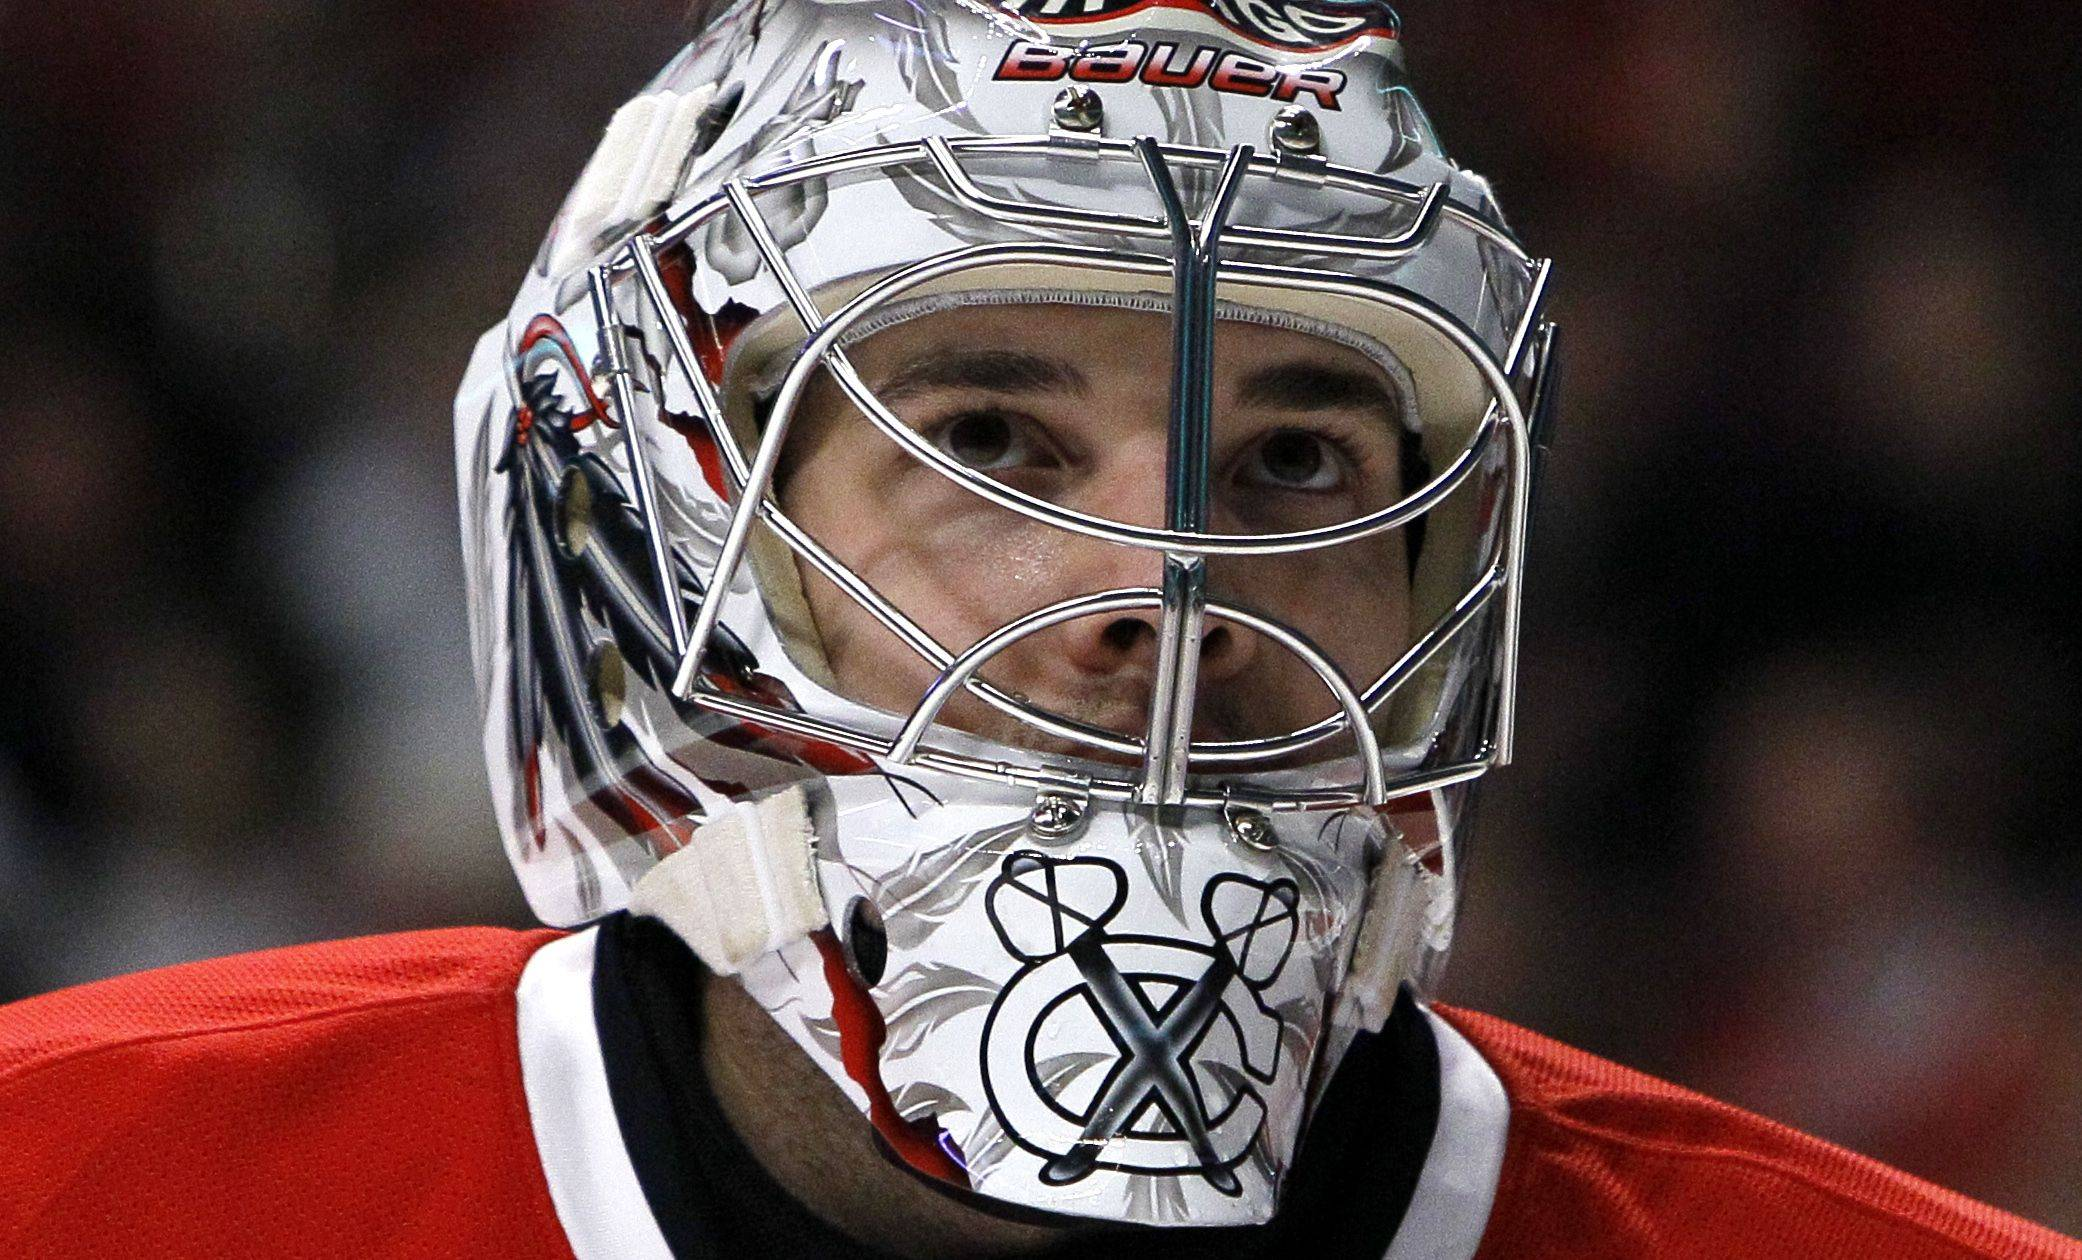 Blackhawks goalie Corey Crawford won 33 games as a rookie, but he isn't a finalist for the Calder Trophy.